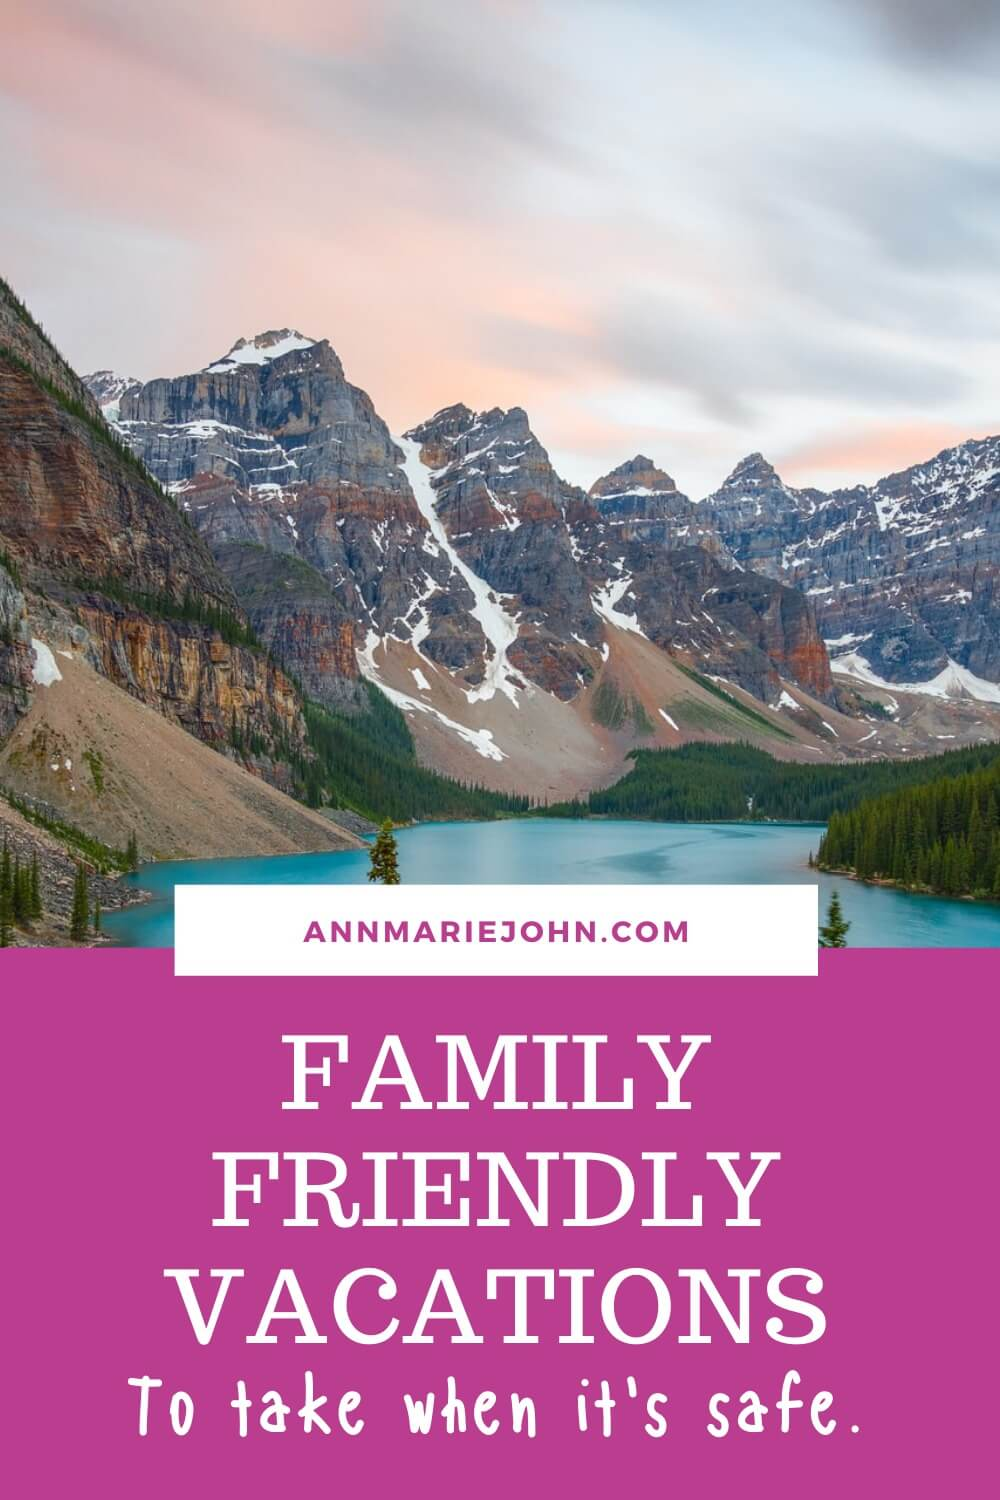 Family Friendly Vacations to Take When It's Safe